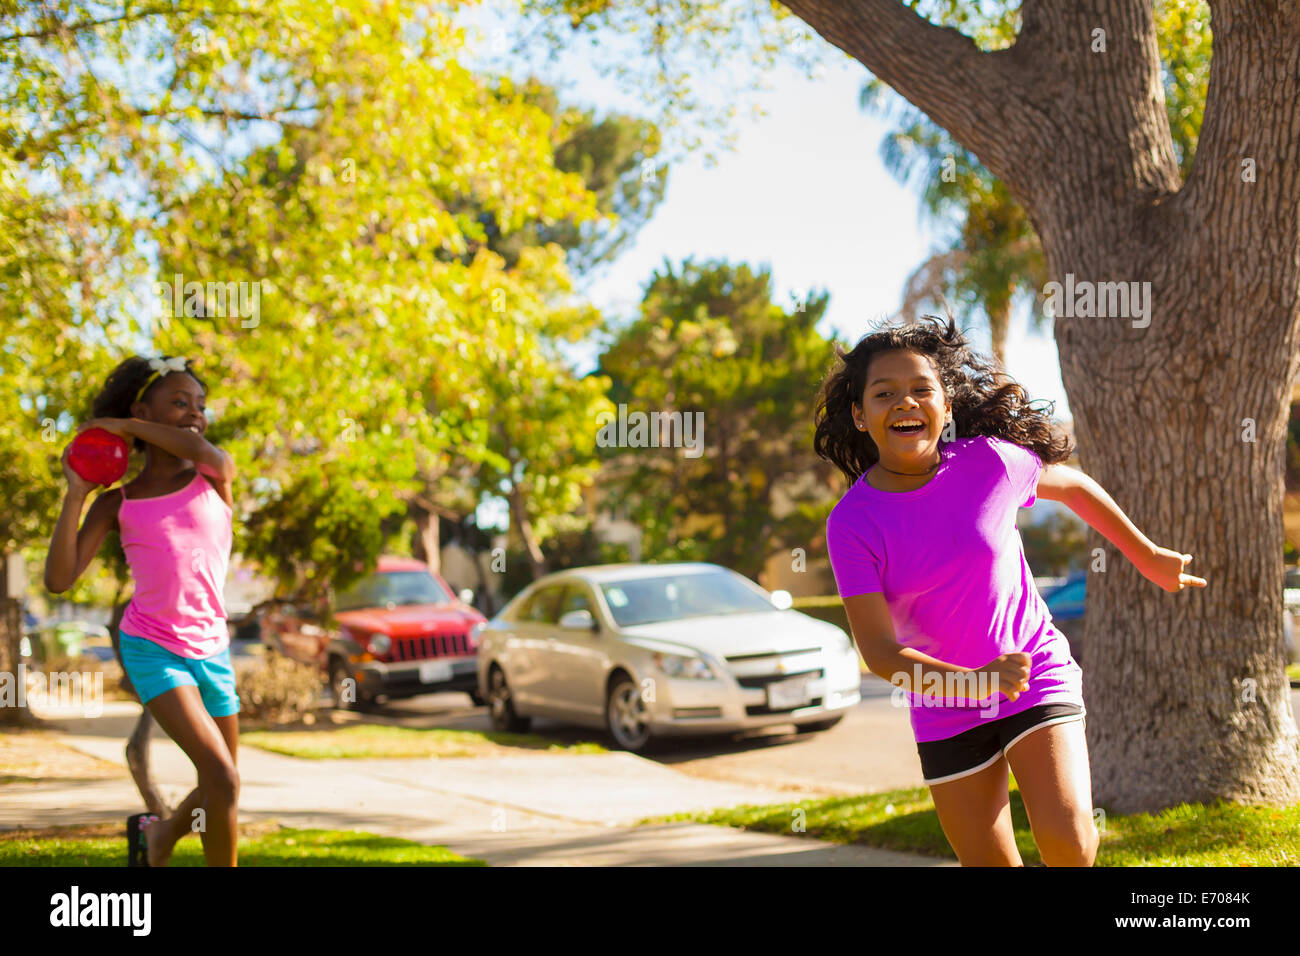 Girl chasing friend with water balloon on street - Stock Image